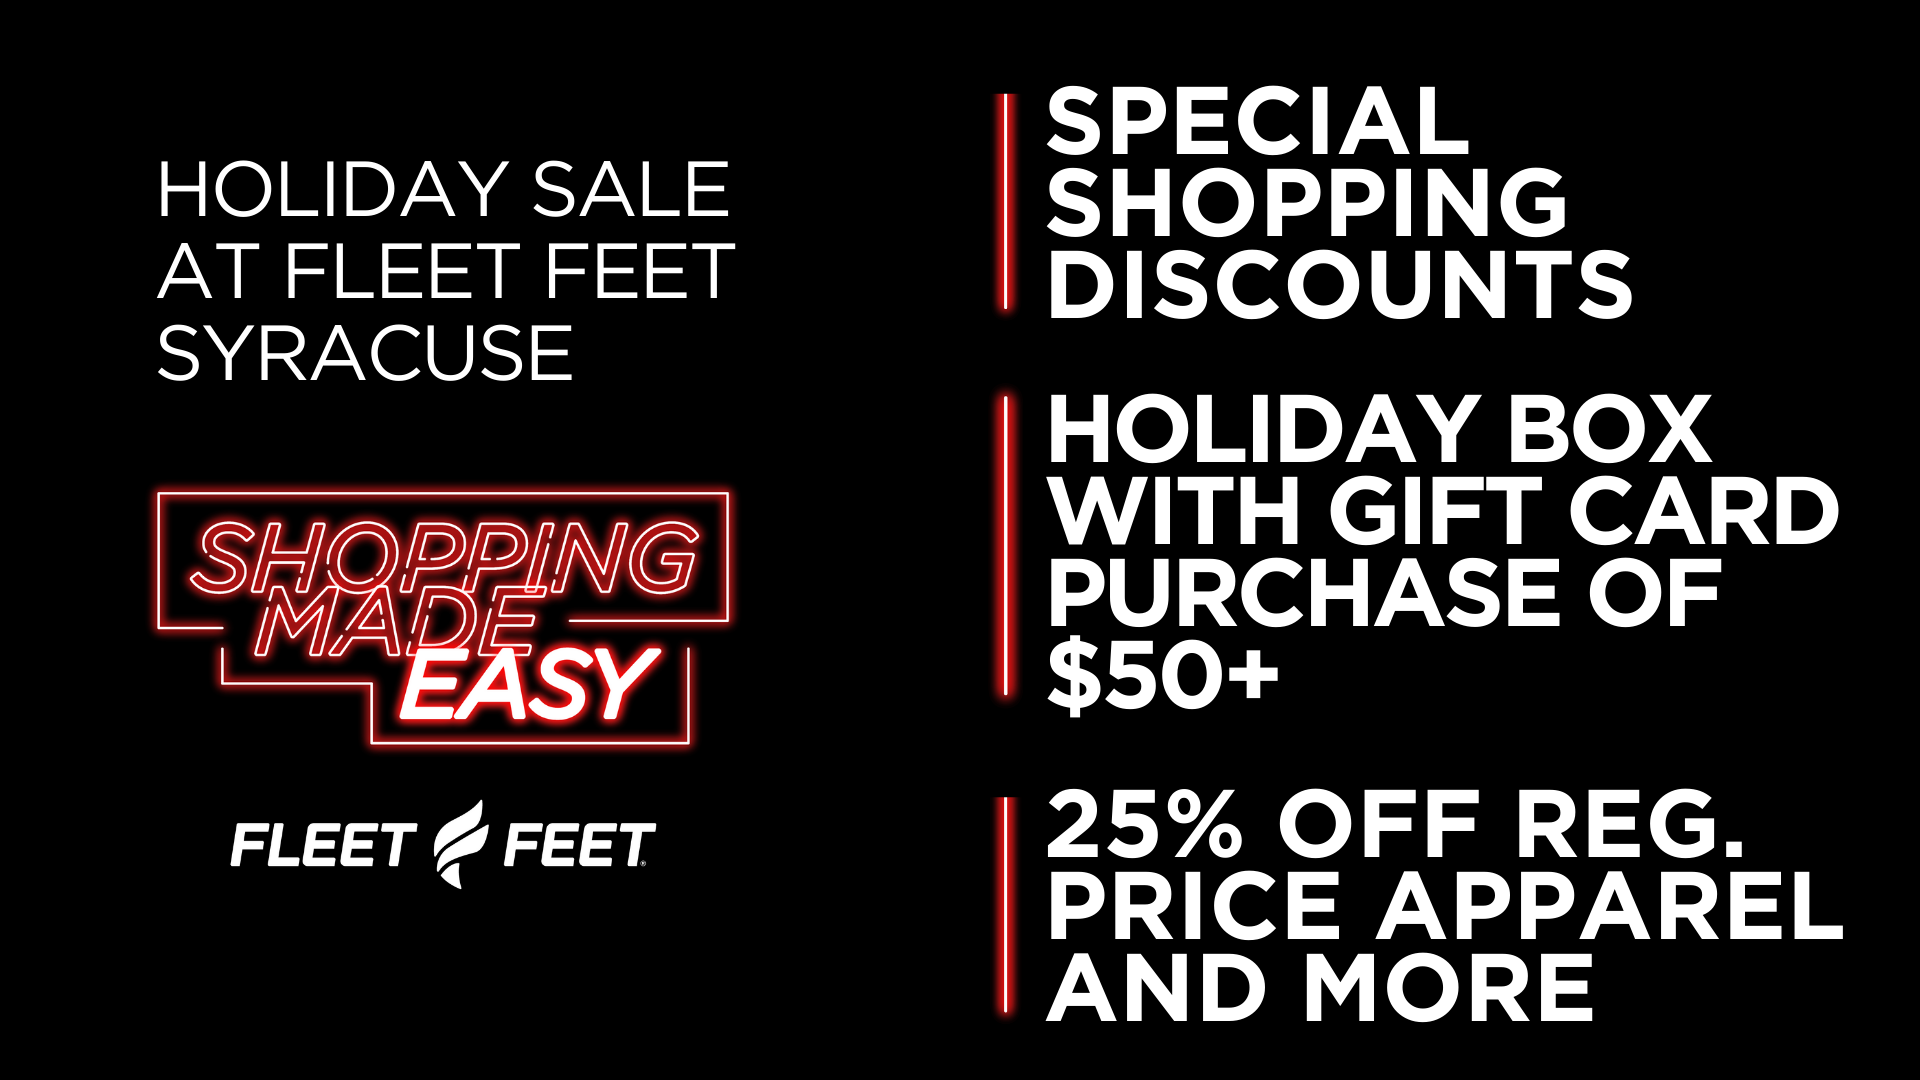 Holiday Gift Runner and Walking Sale